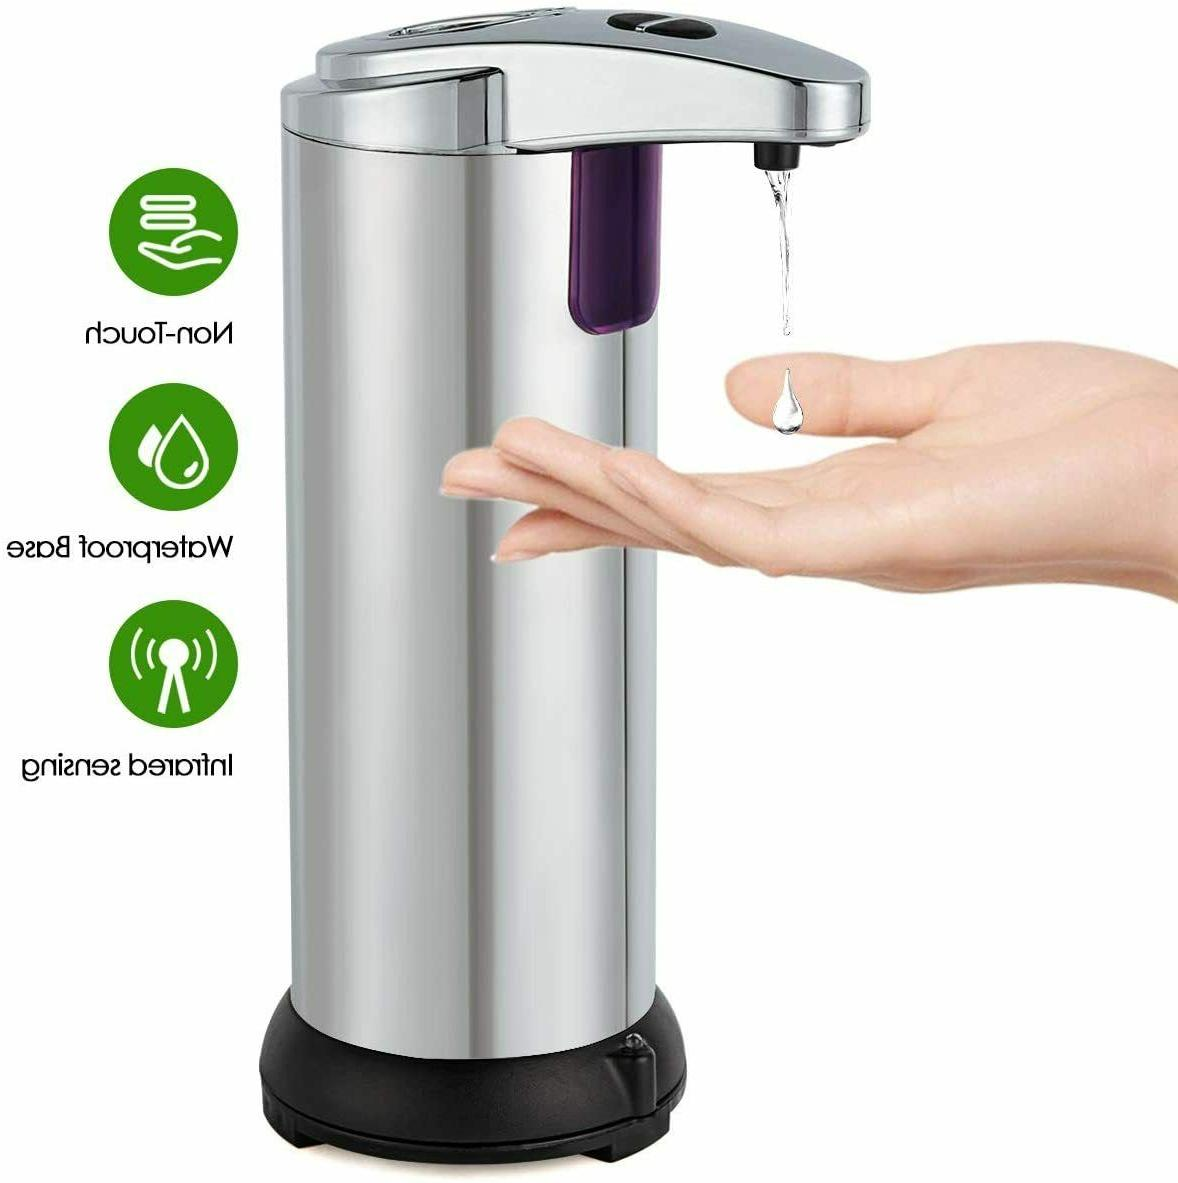 280ml Stainless Handsfree Sensor Touchless Soap Kitchen